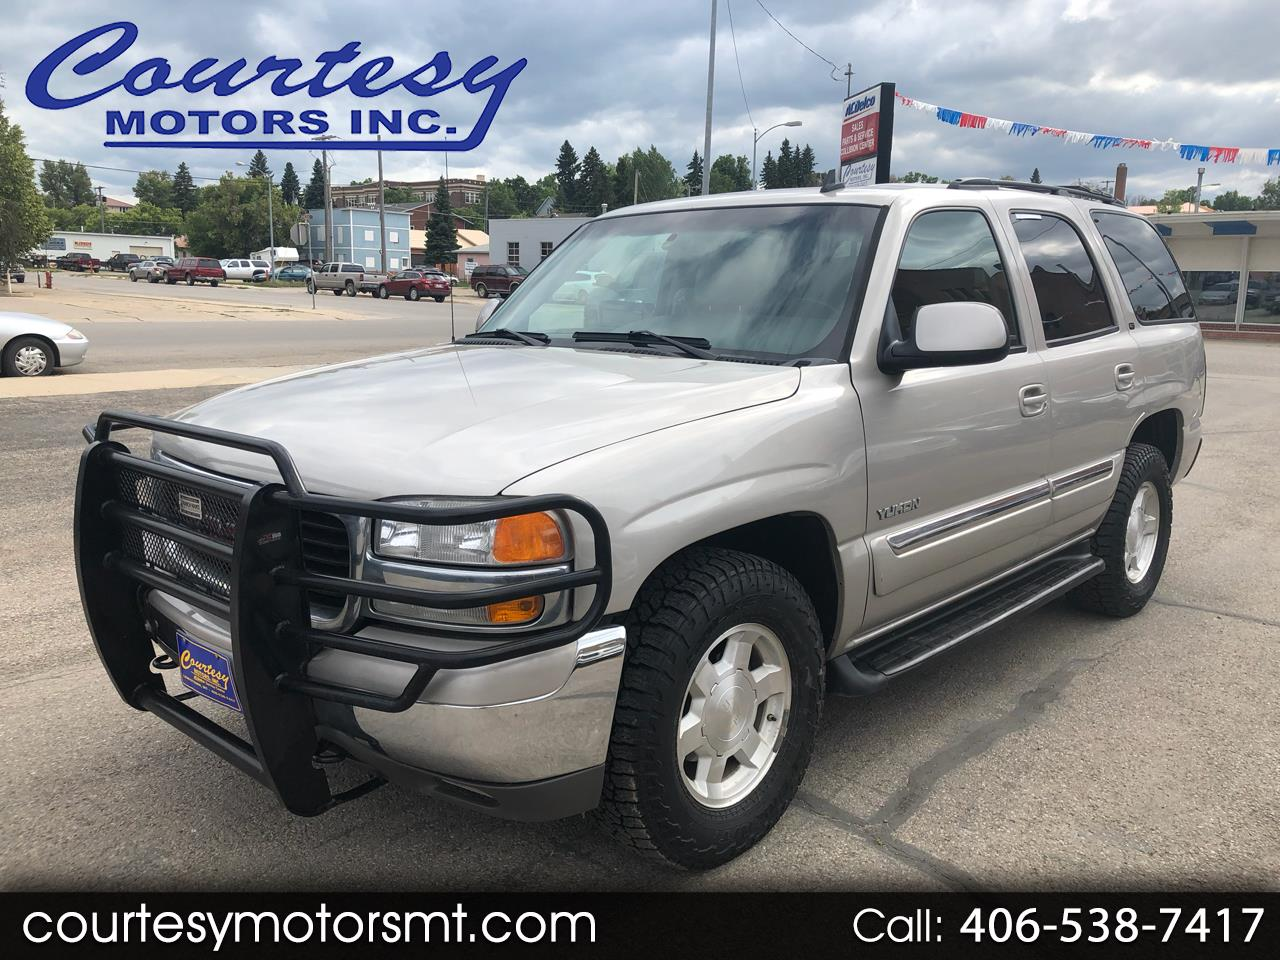 Used Cars for Sale Lewistown MT 59457 Courtesy Motors Inc